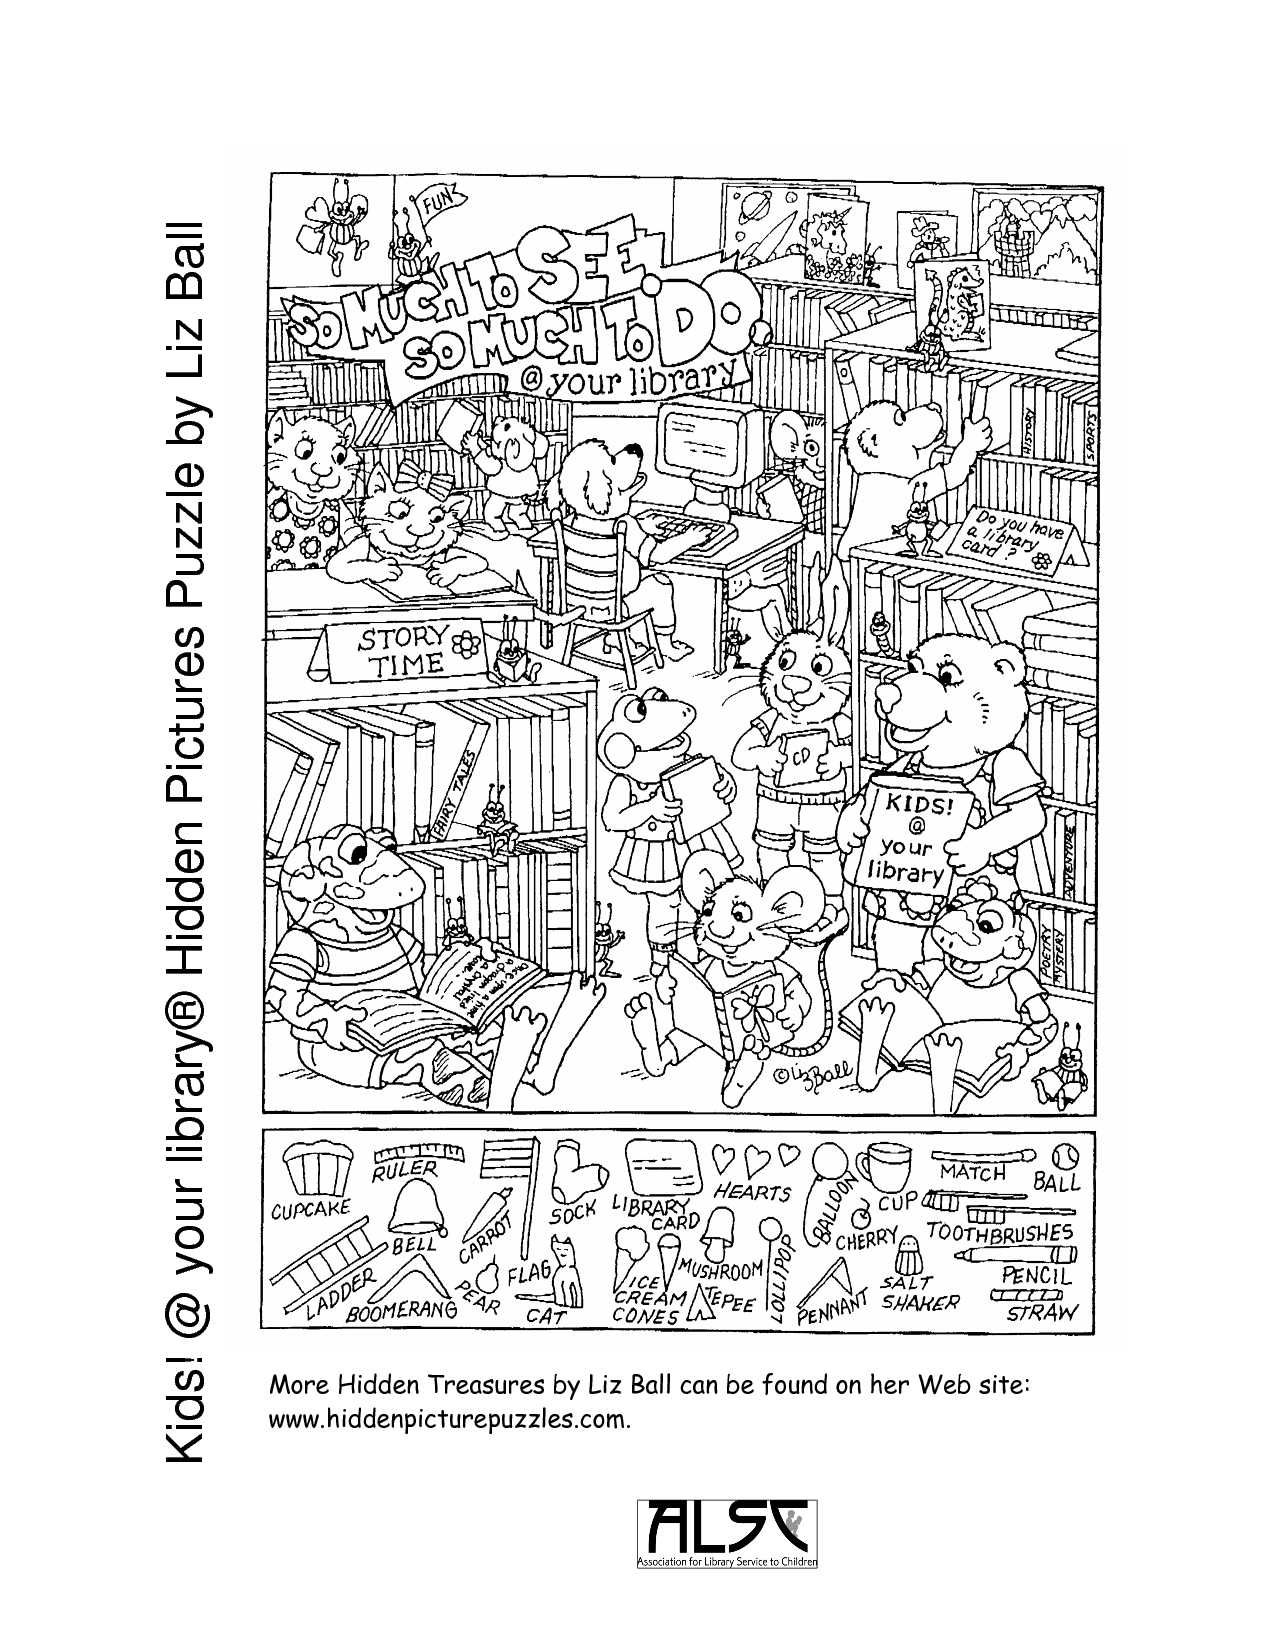 Printable Puzzles For Adults Kids Your Library Hidden Pictures